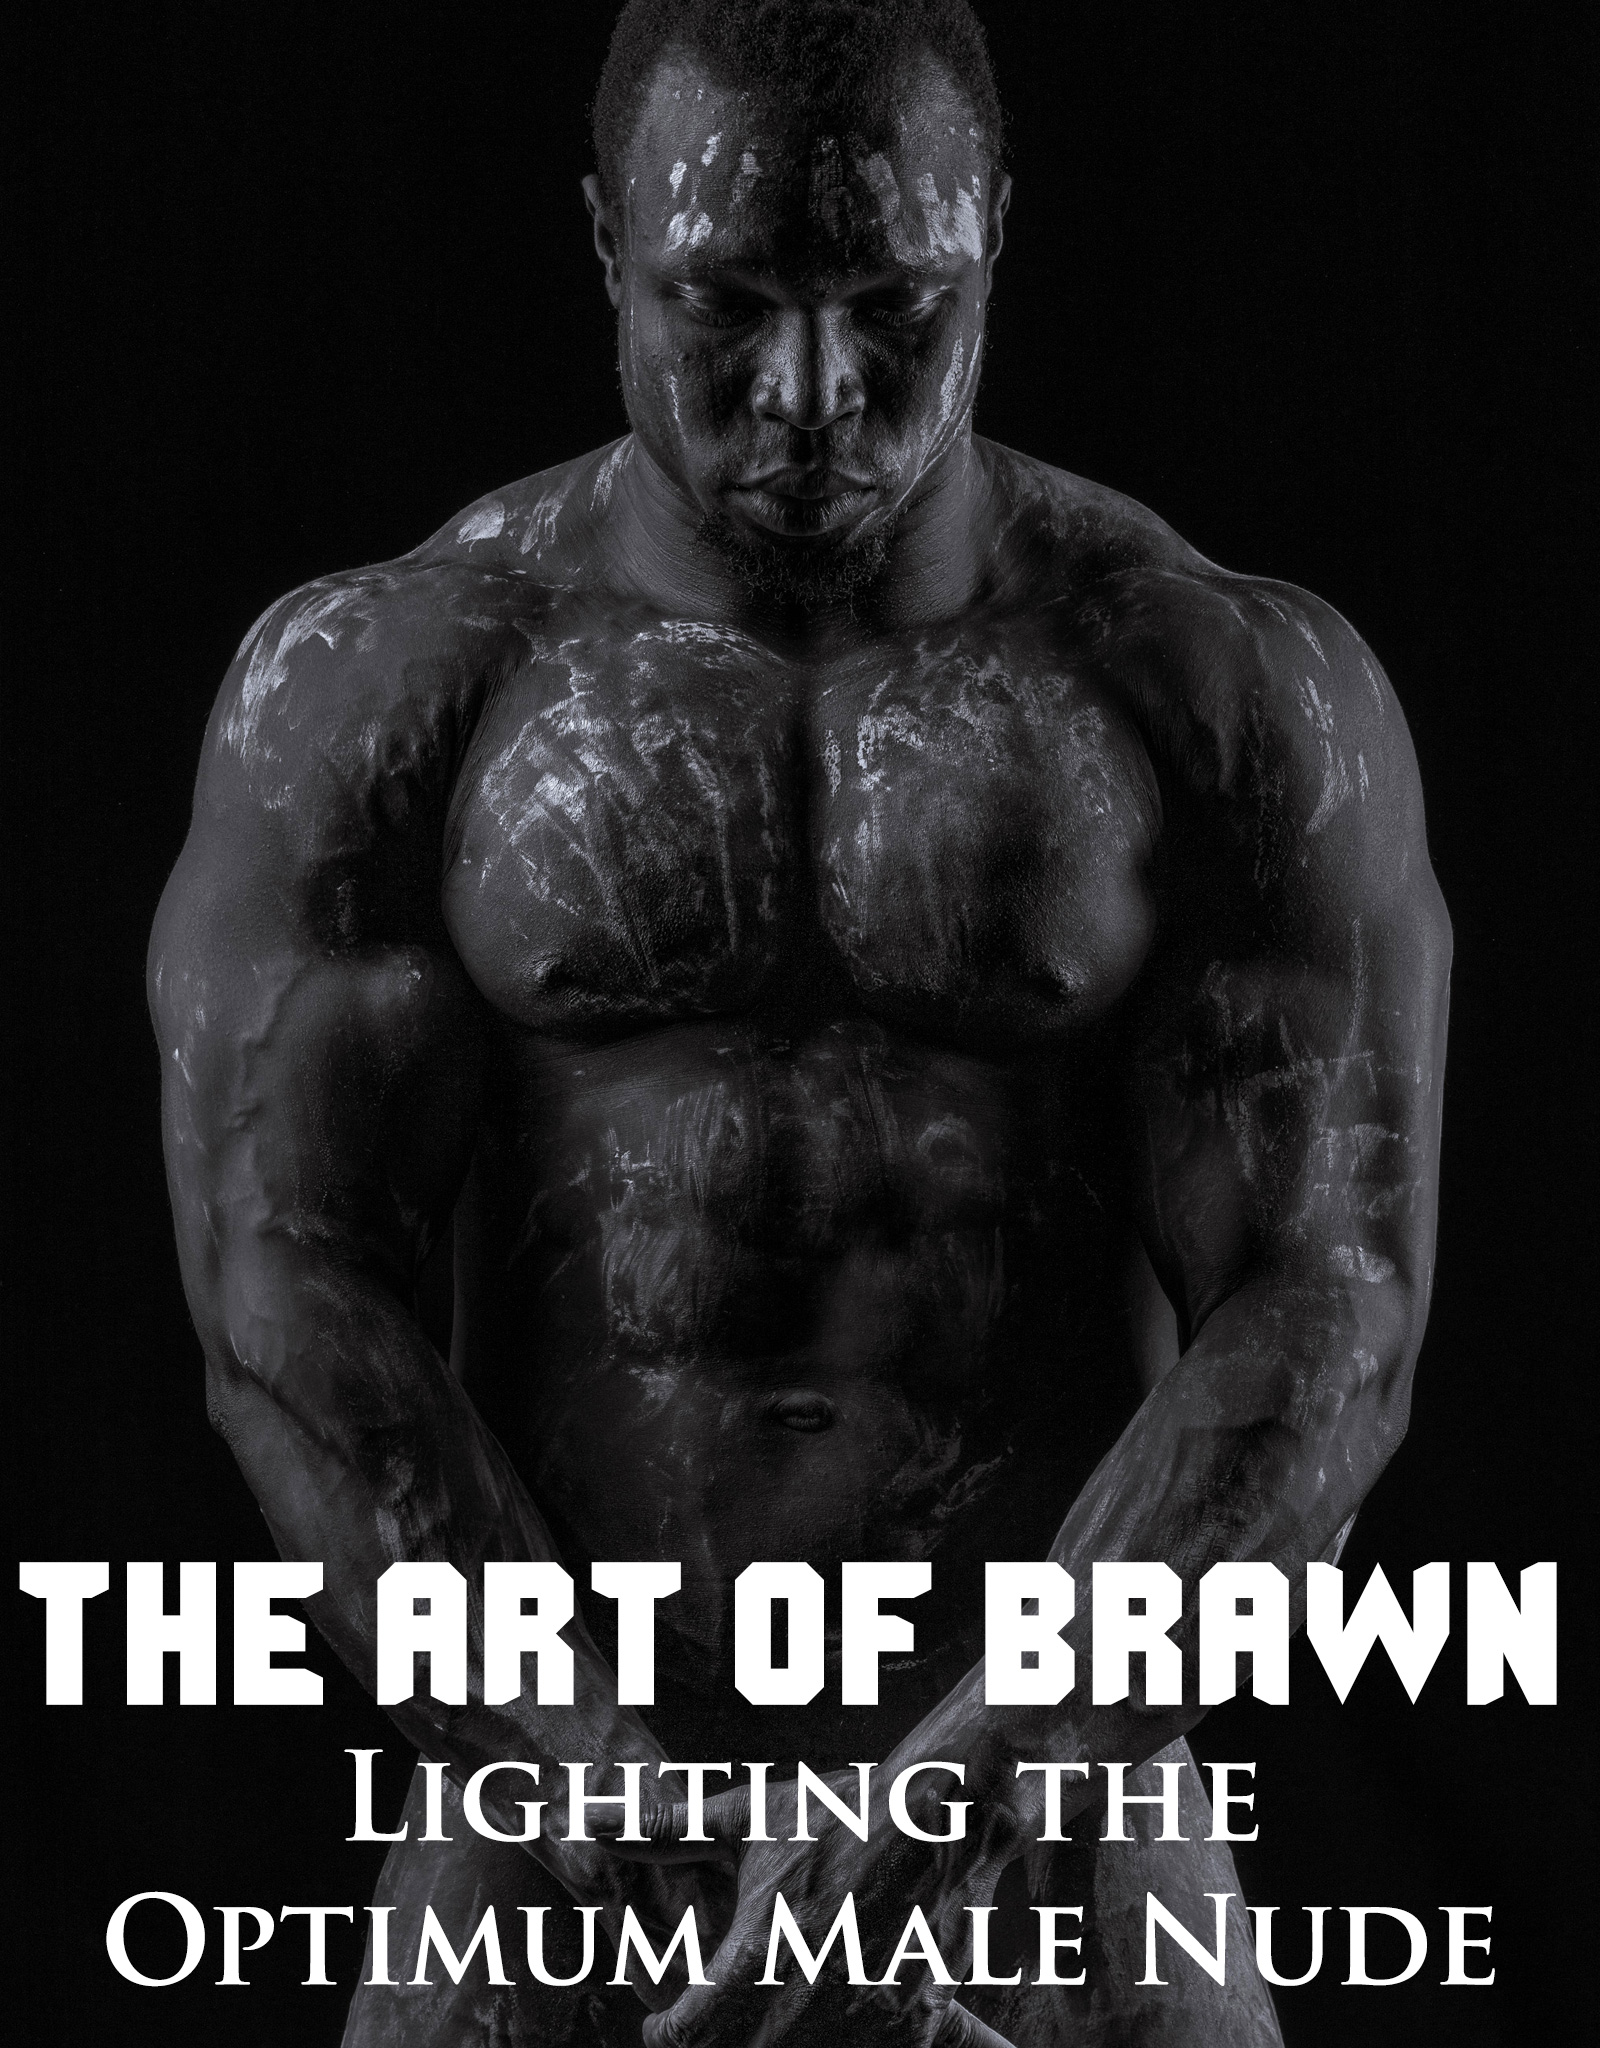 The Art of Brawn: Lighting the Optimum Male Nude